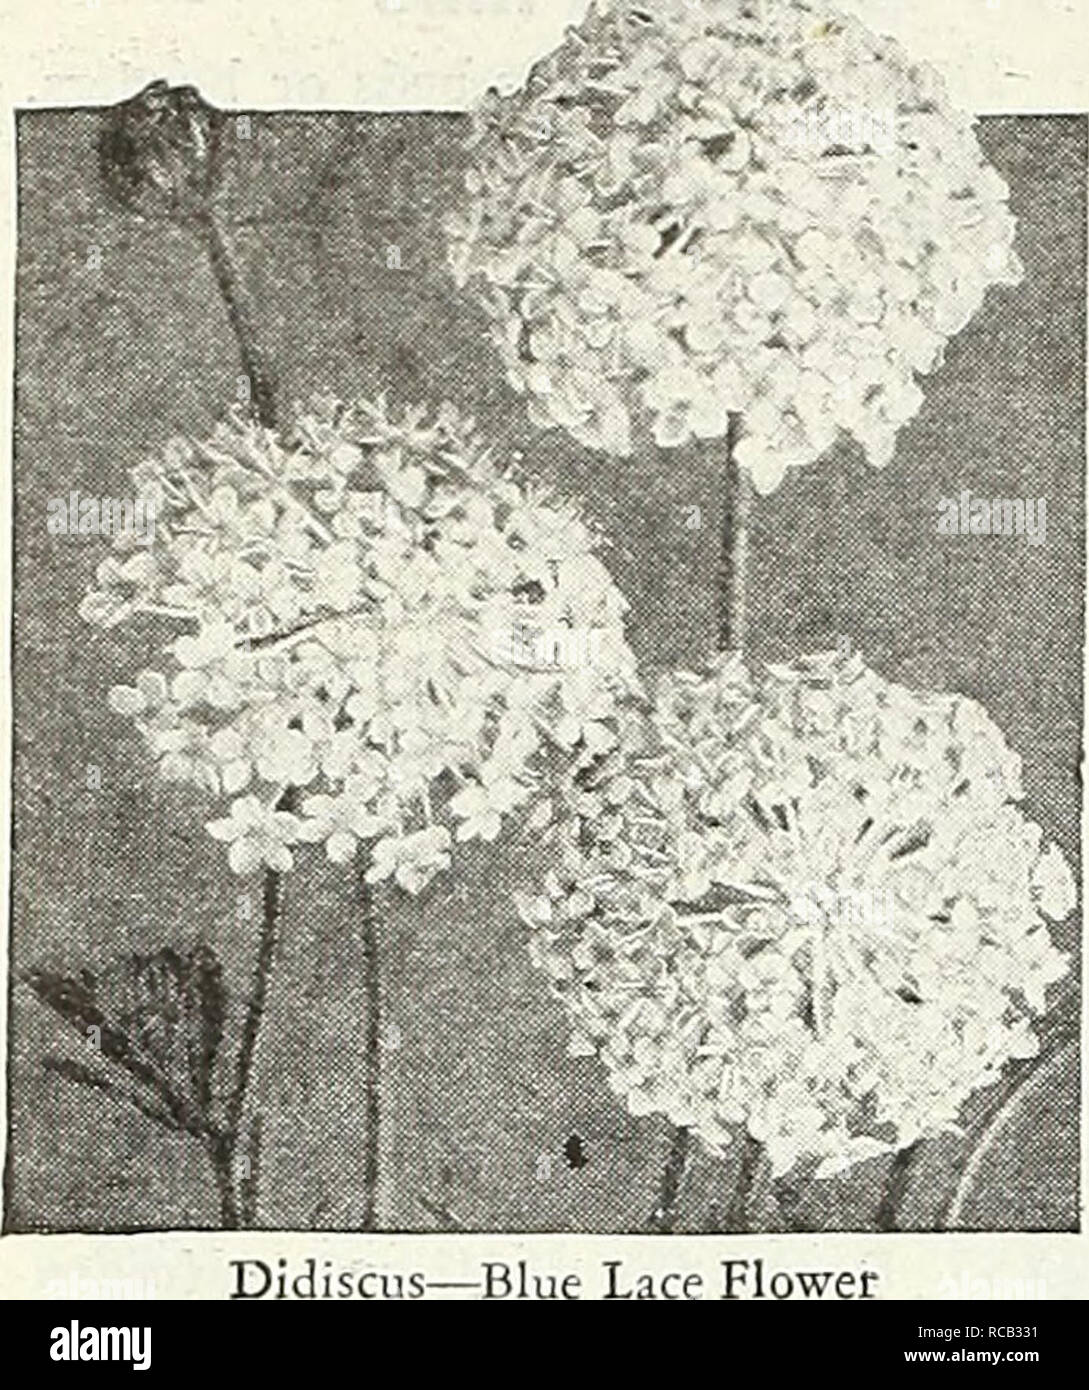 ". Dreer's 1948 - our 110th year. Seeds Catalogs; Nursery stock Catalogs; Gardening Equipment and supplies Catalogs; Flowers Seeds Catalogs; Vegetables Seeds Catalogs; Fruit Seeds Catalogs. &-.""!«. riuwei Didiscus Blue Lace Flotver @ 2311 Coeruleus. A very interesting and showy Australian annual bear- ing lacy, light lavender flower heads from July until frost. Excellent for borders and cutting. Grows 18 inches high. Pkt.-lOc; large pkt. 30c.. Please note that these images are extracted from scanned page images that may have been digitally enhanced for readability - coloration and appe Stock Photo"